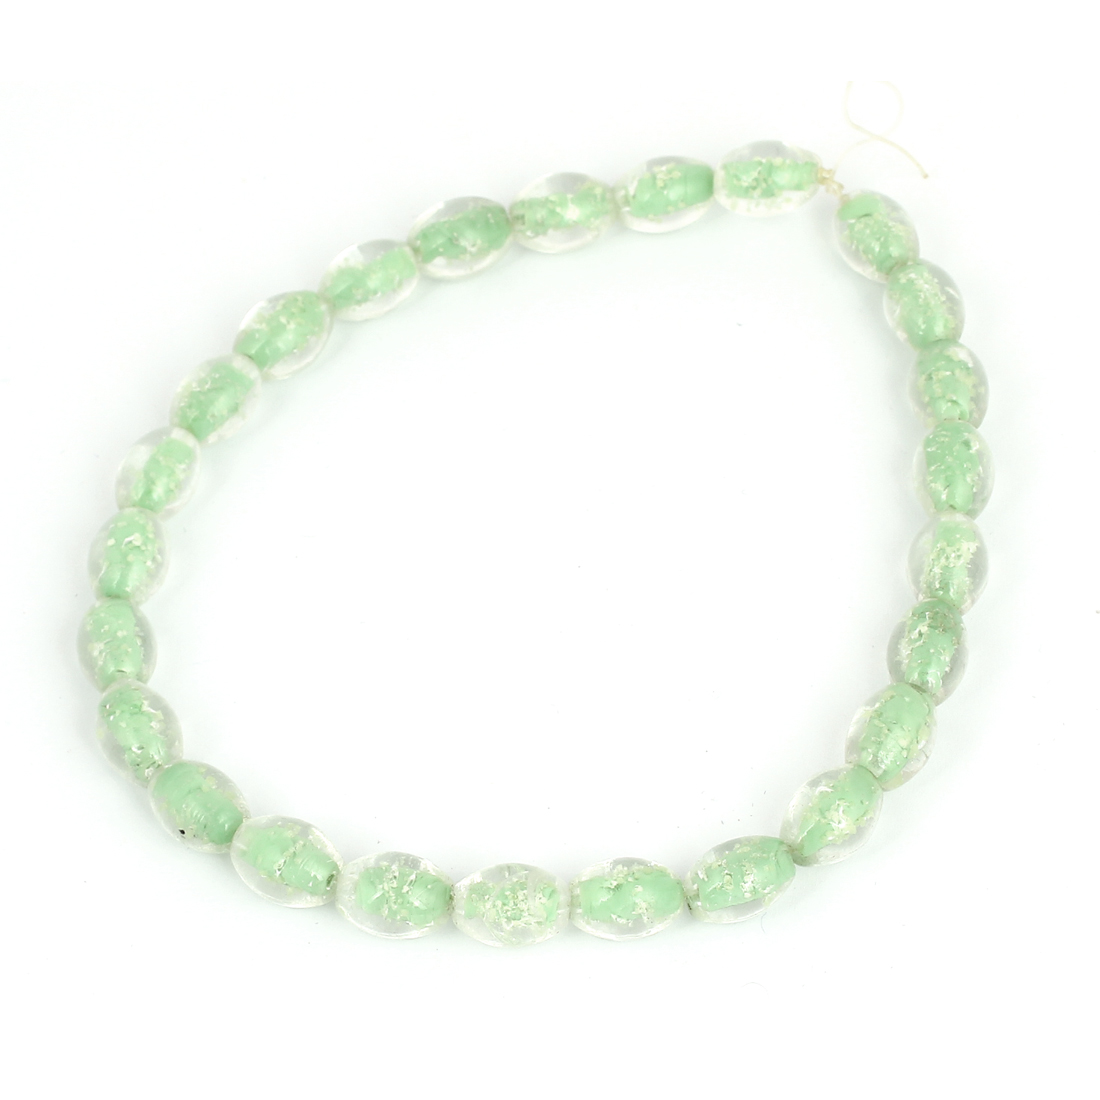 Lady DIY Luminous Imitation Pearl Handcraft Beads Necklace Green